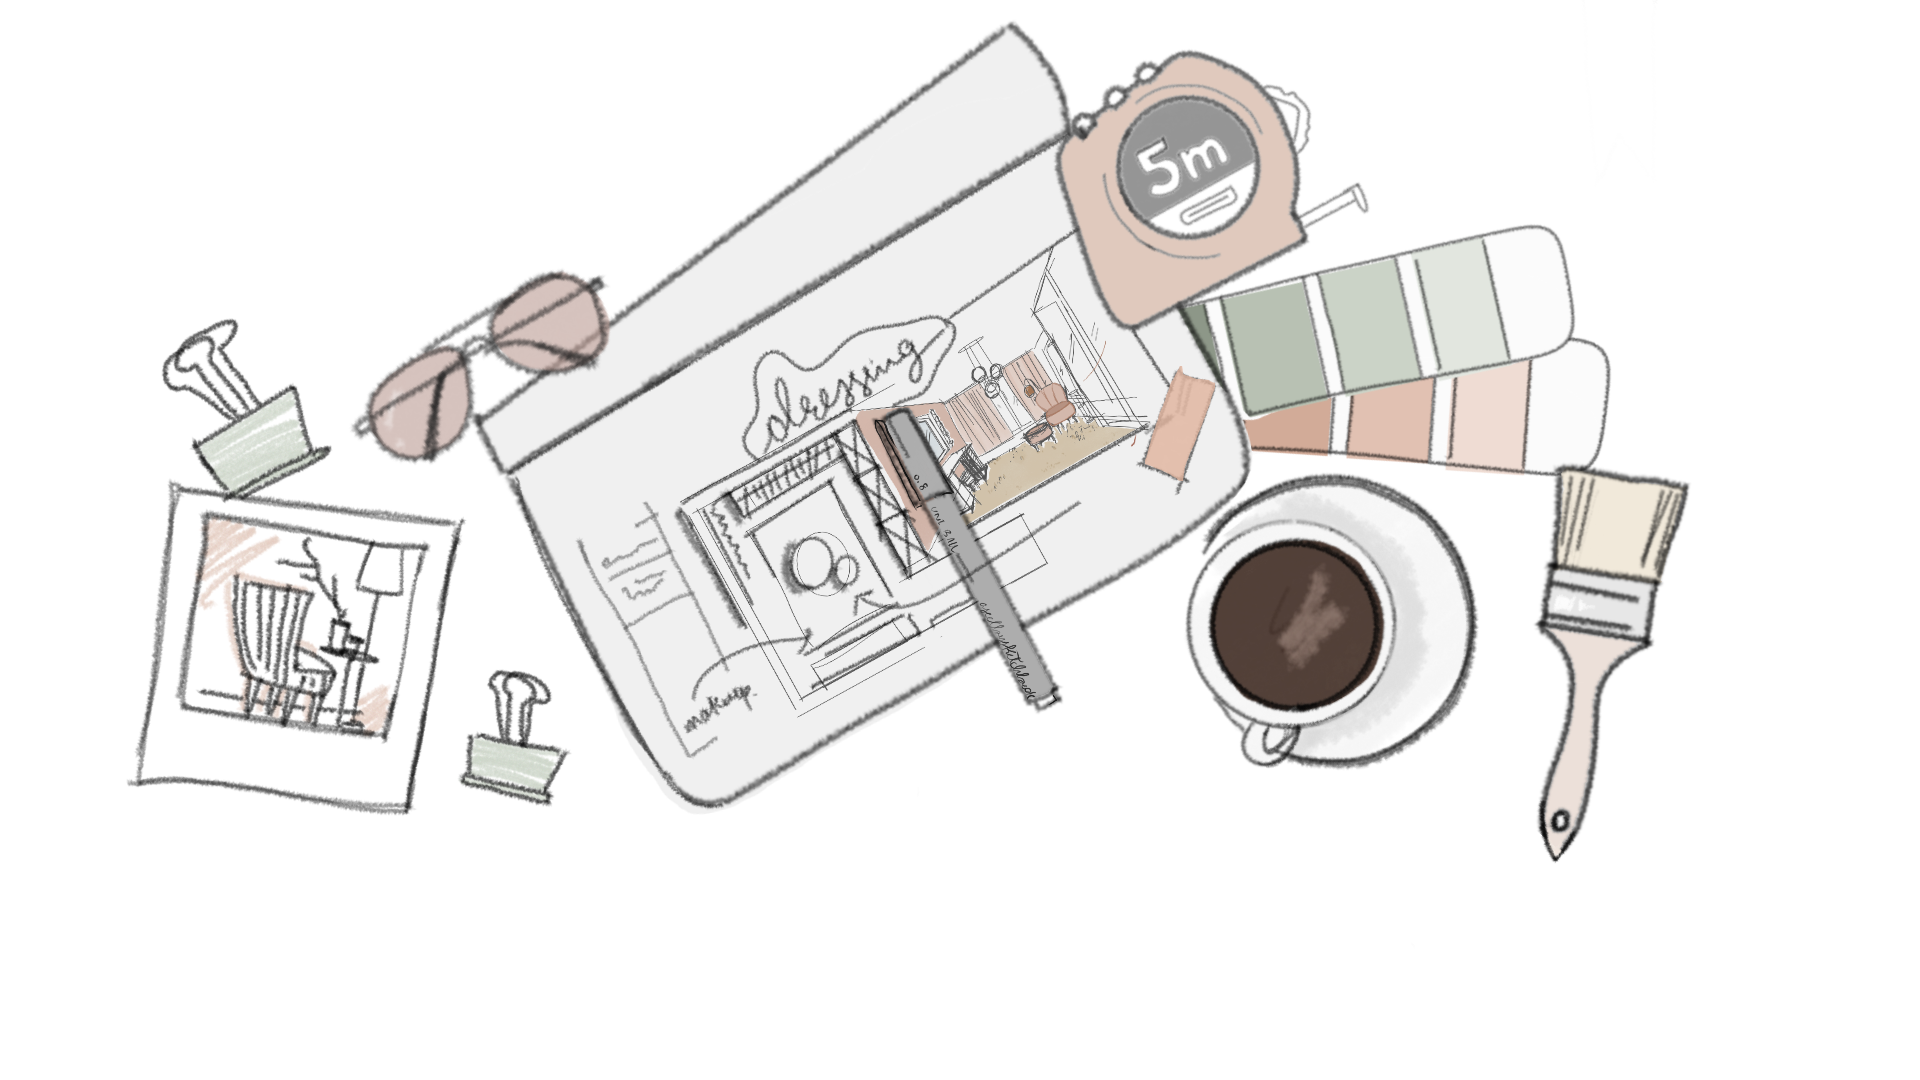 Sketched Flatlay Of Interior Design Tools Interior Sketch Interior